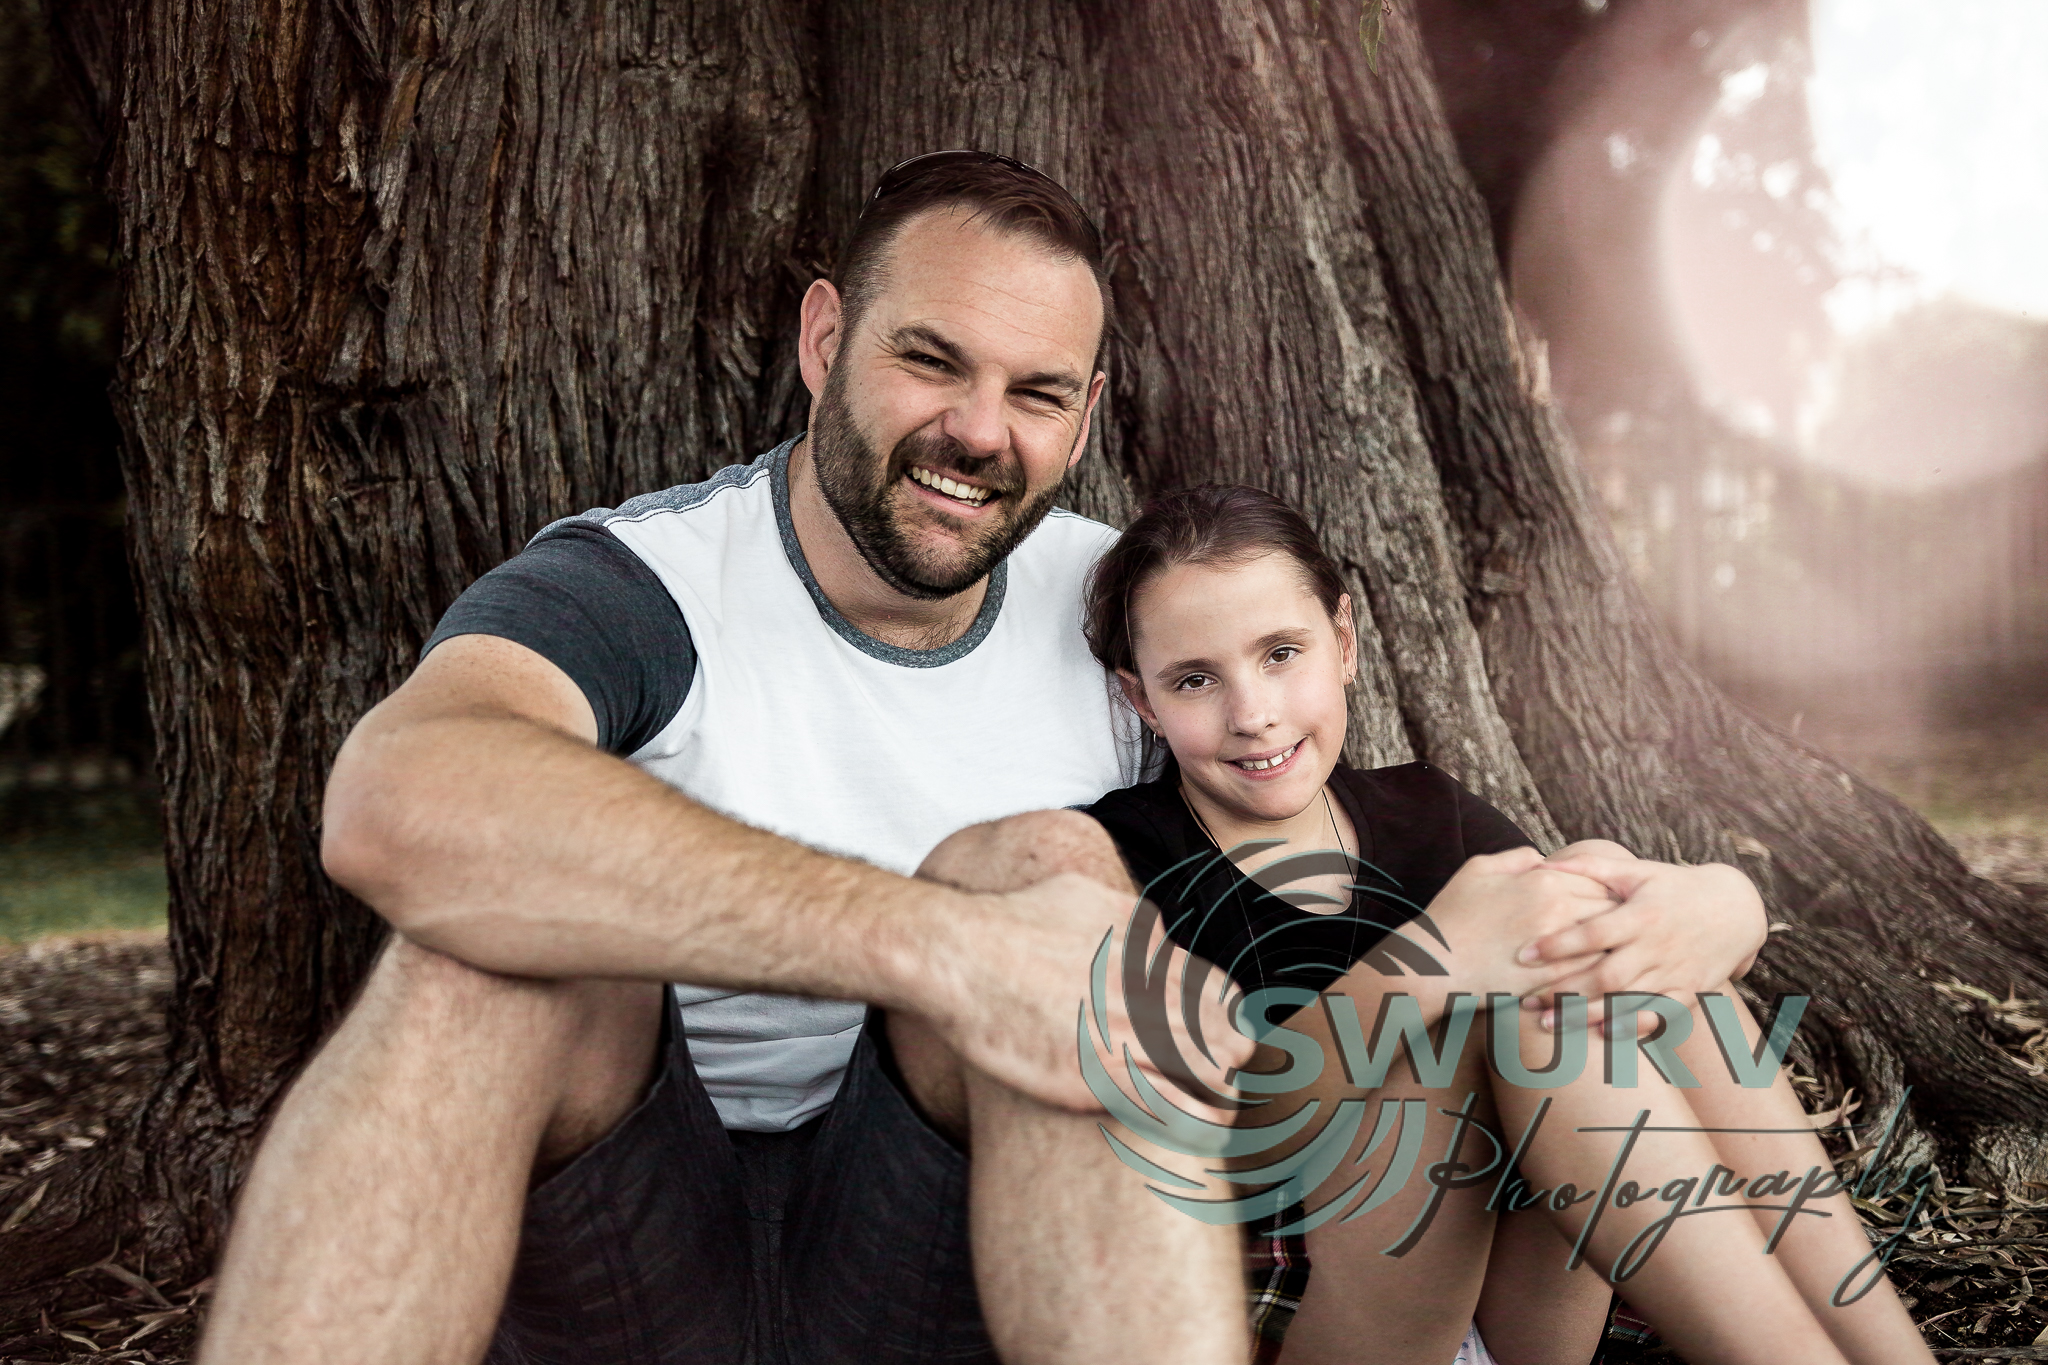 Father Daughter by Swurv